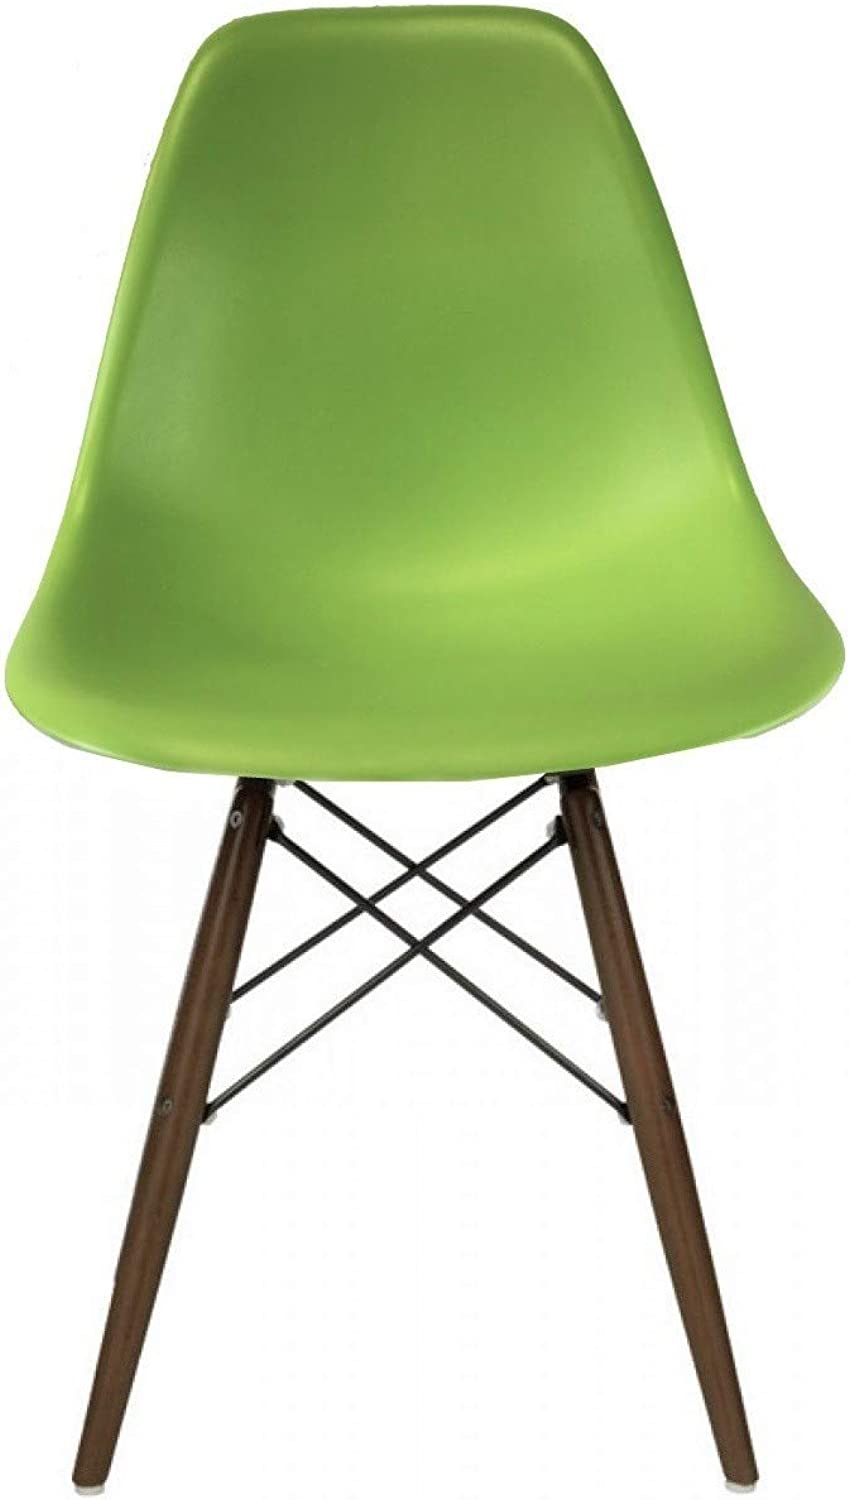 Take Me Home Furniture Eames Style Eiffel Dinning Chair Apple Green with Walnut Wood Legs